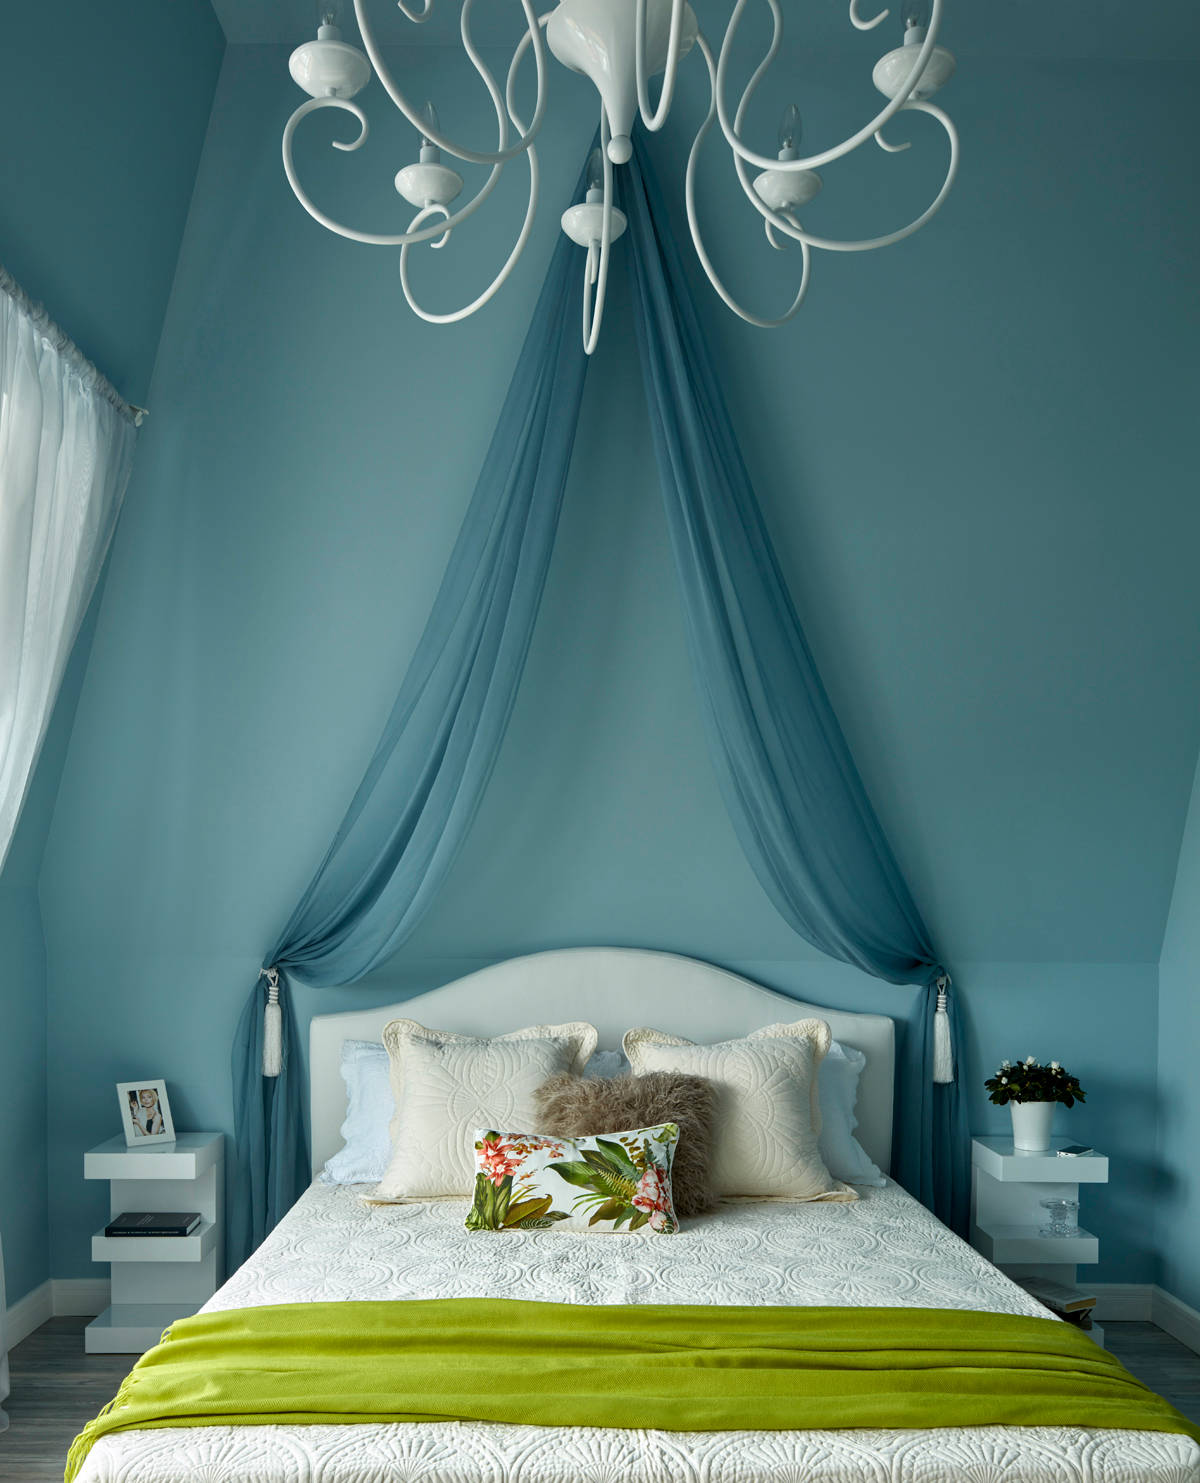 12 Buoyant Blue Bedrooms That Add Tranquility and Calm to Your